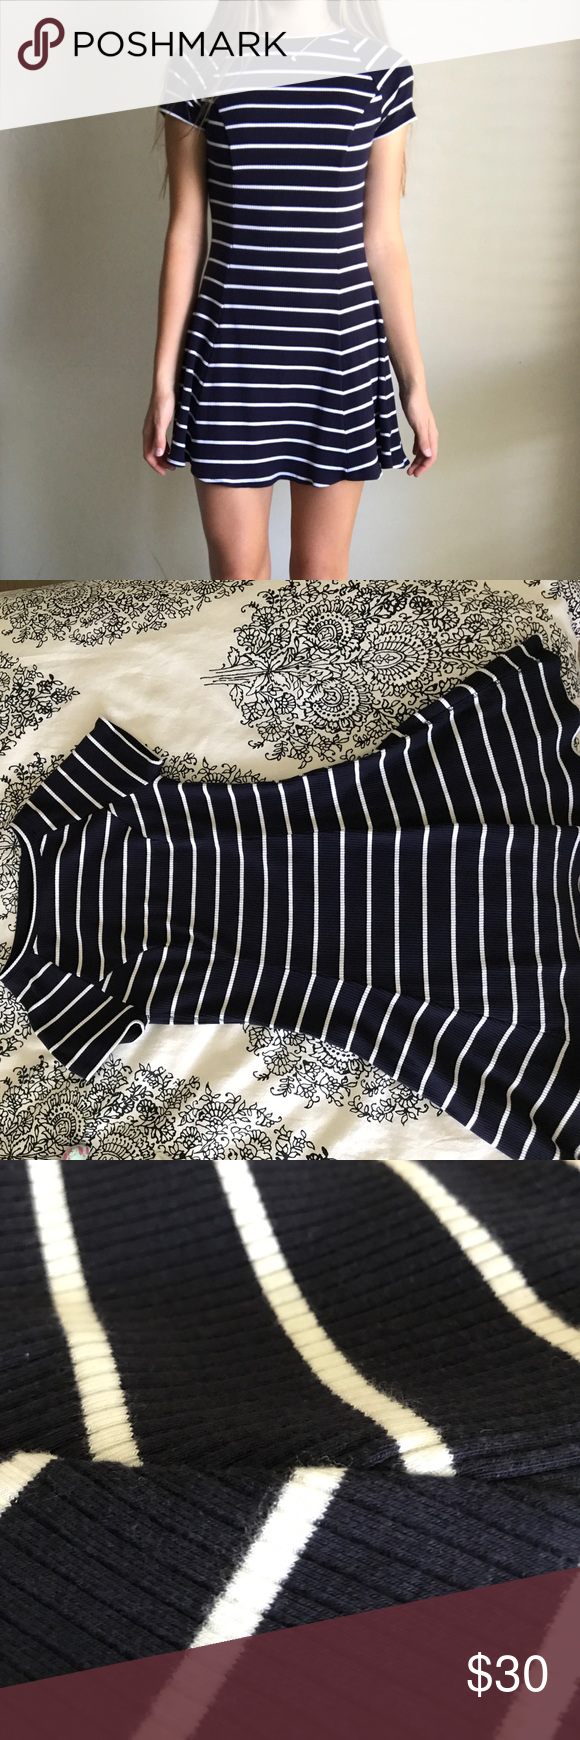 Tshirt dress navy and white striped dress soft material and ribbed